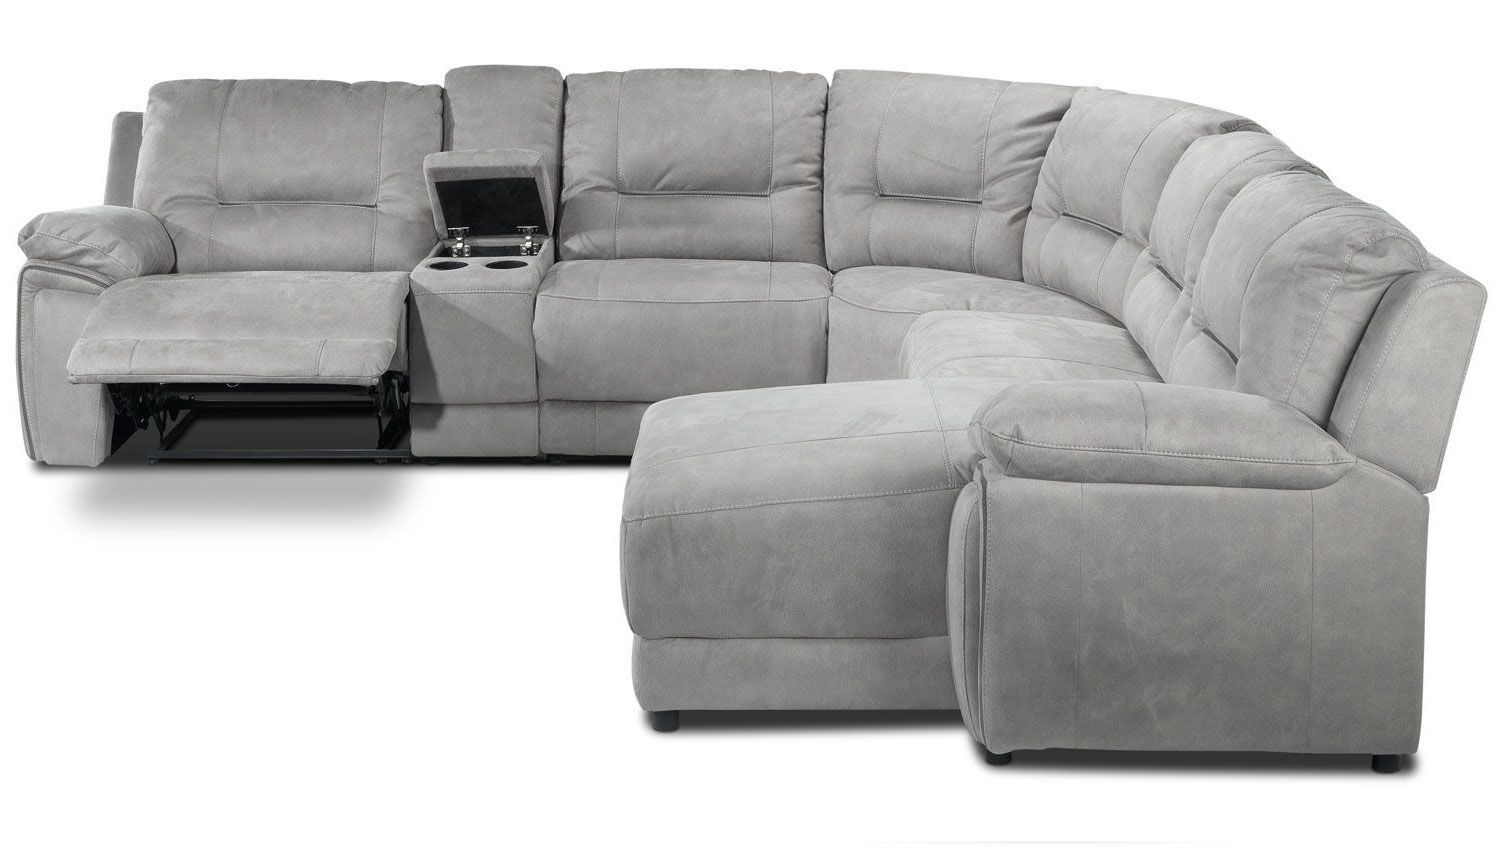 Pasadena 6 Pc Reclining Sectional With Chaise Reclining Sectional Reclining Sectional With Chaise Sectional